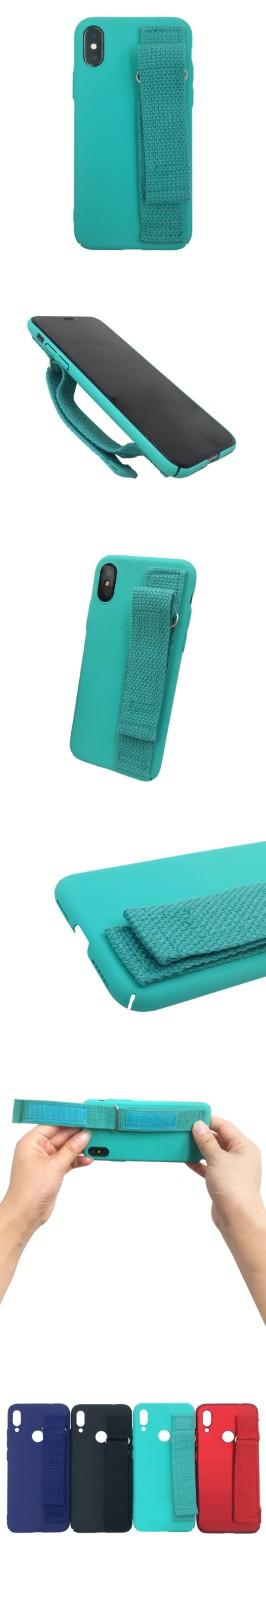 mobile phone cases wholesale for shop TenChen Tech-1